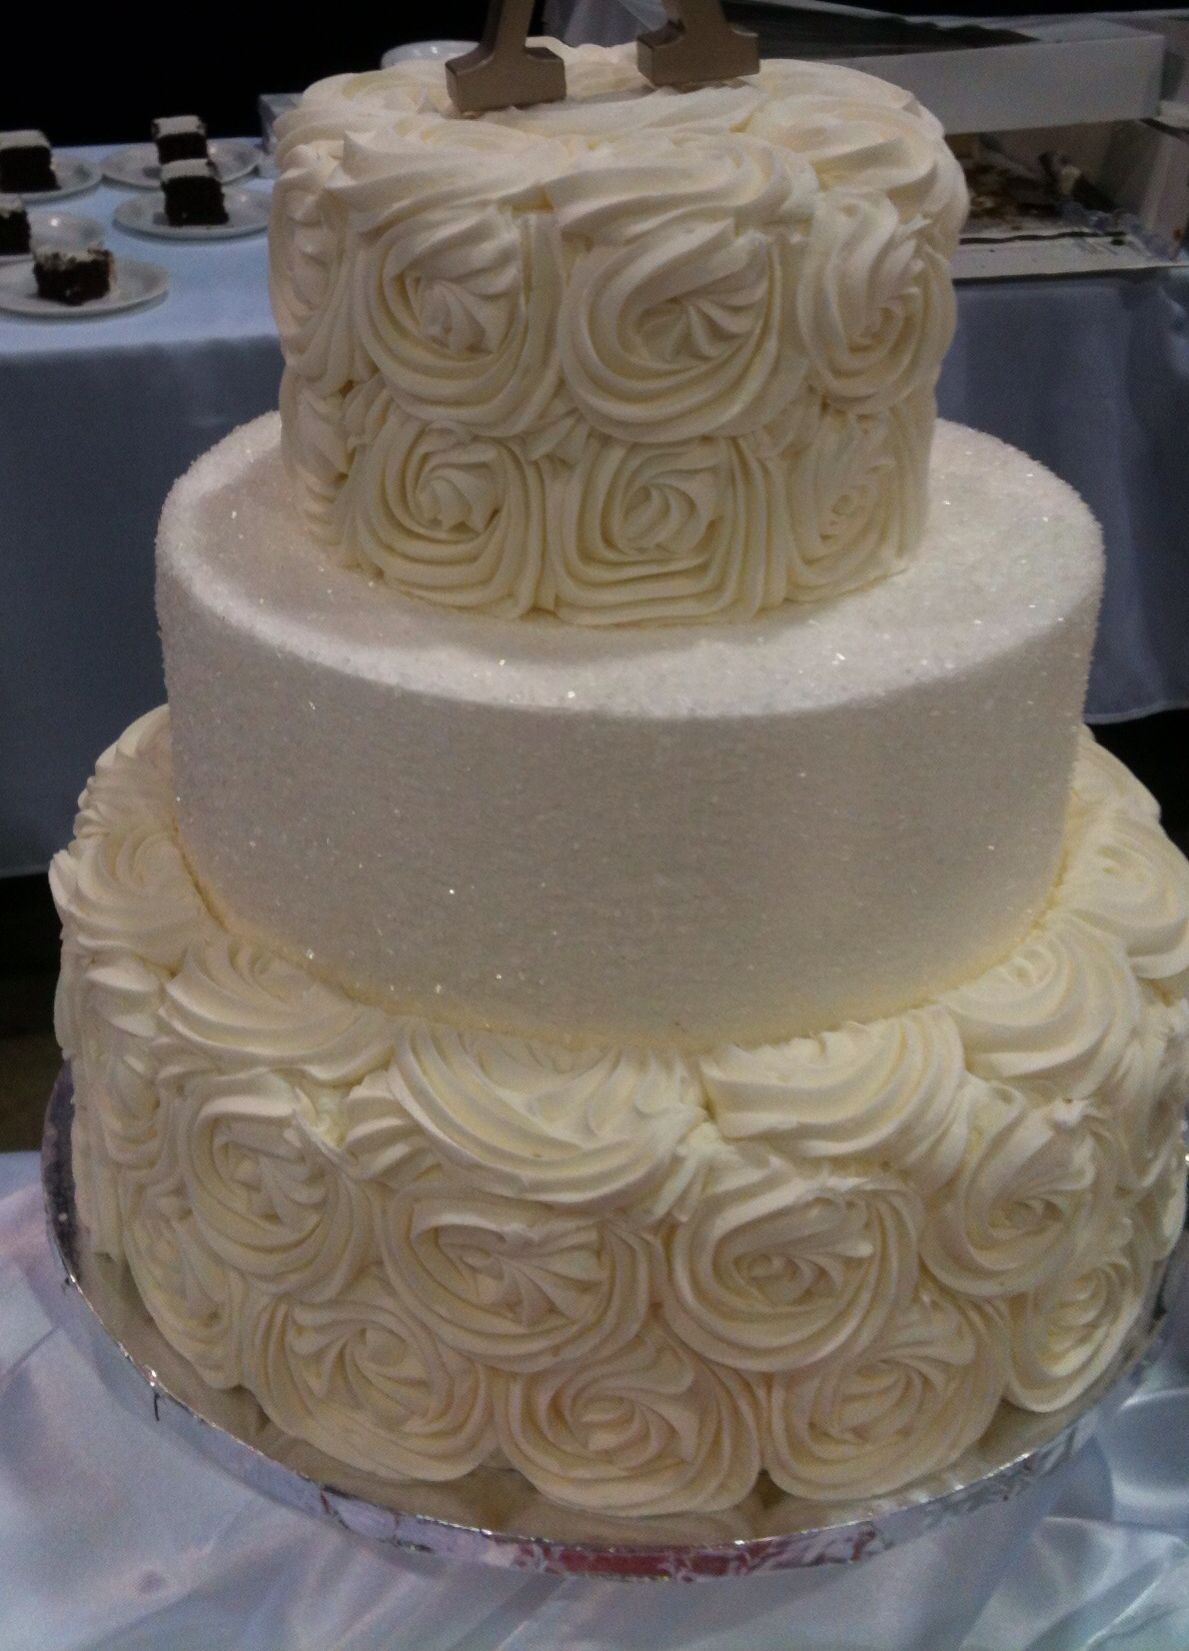 Pictures Of Walmart Wedding Cakes : pictures, walmart, wedding, cakes, Wedding, Cake., Walmart!, Walmart, Cake,, Prices,, Anniversary, Cakes